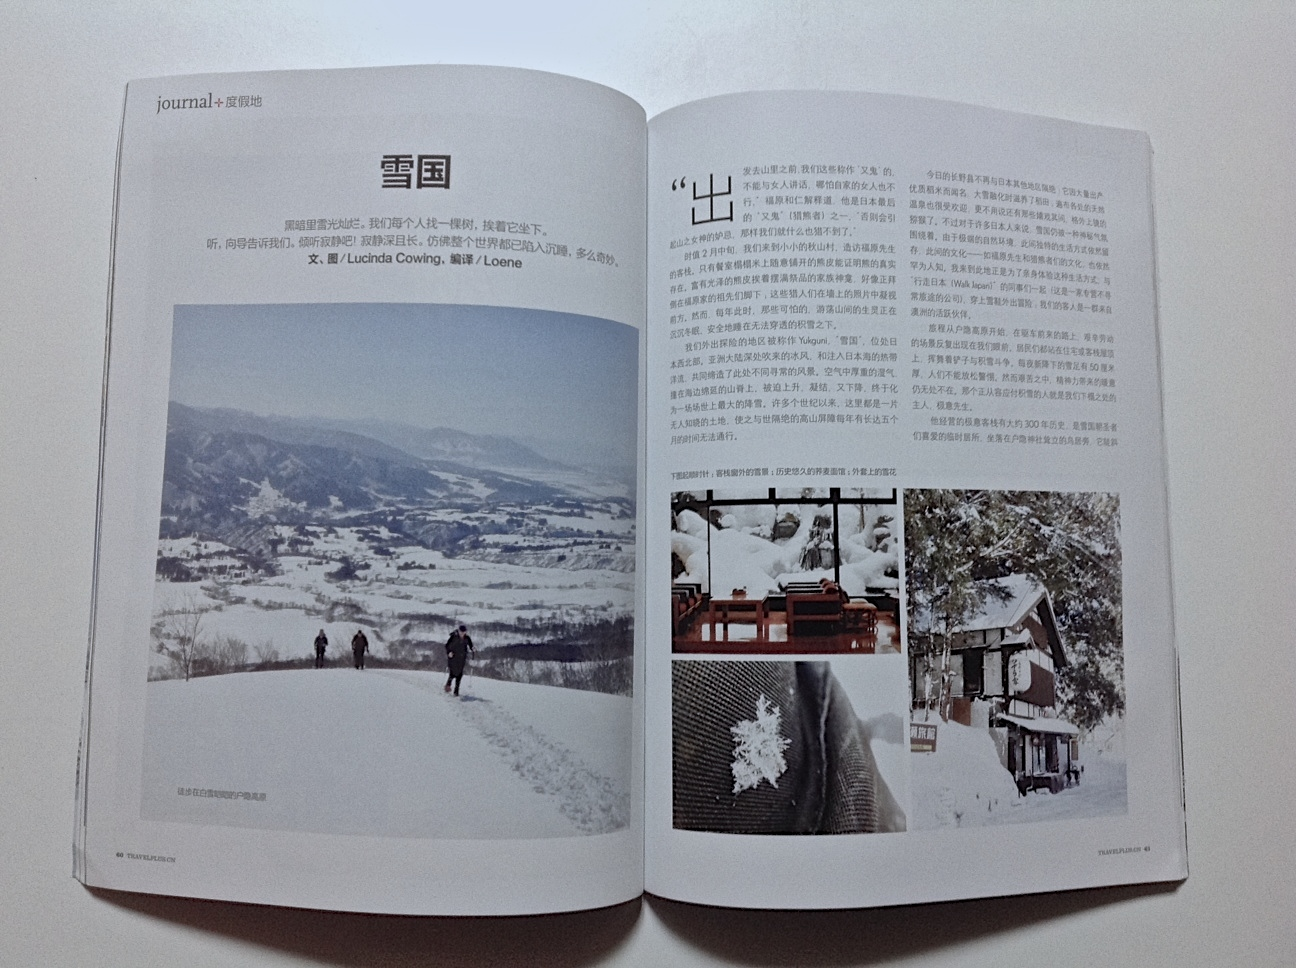 Snow Country Travelplus China magazine Japan snowshoeing